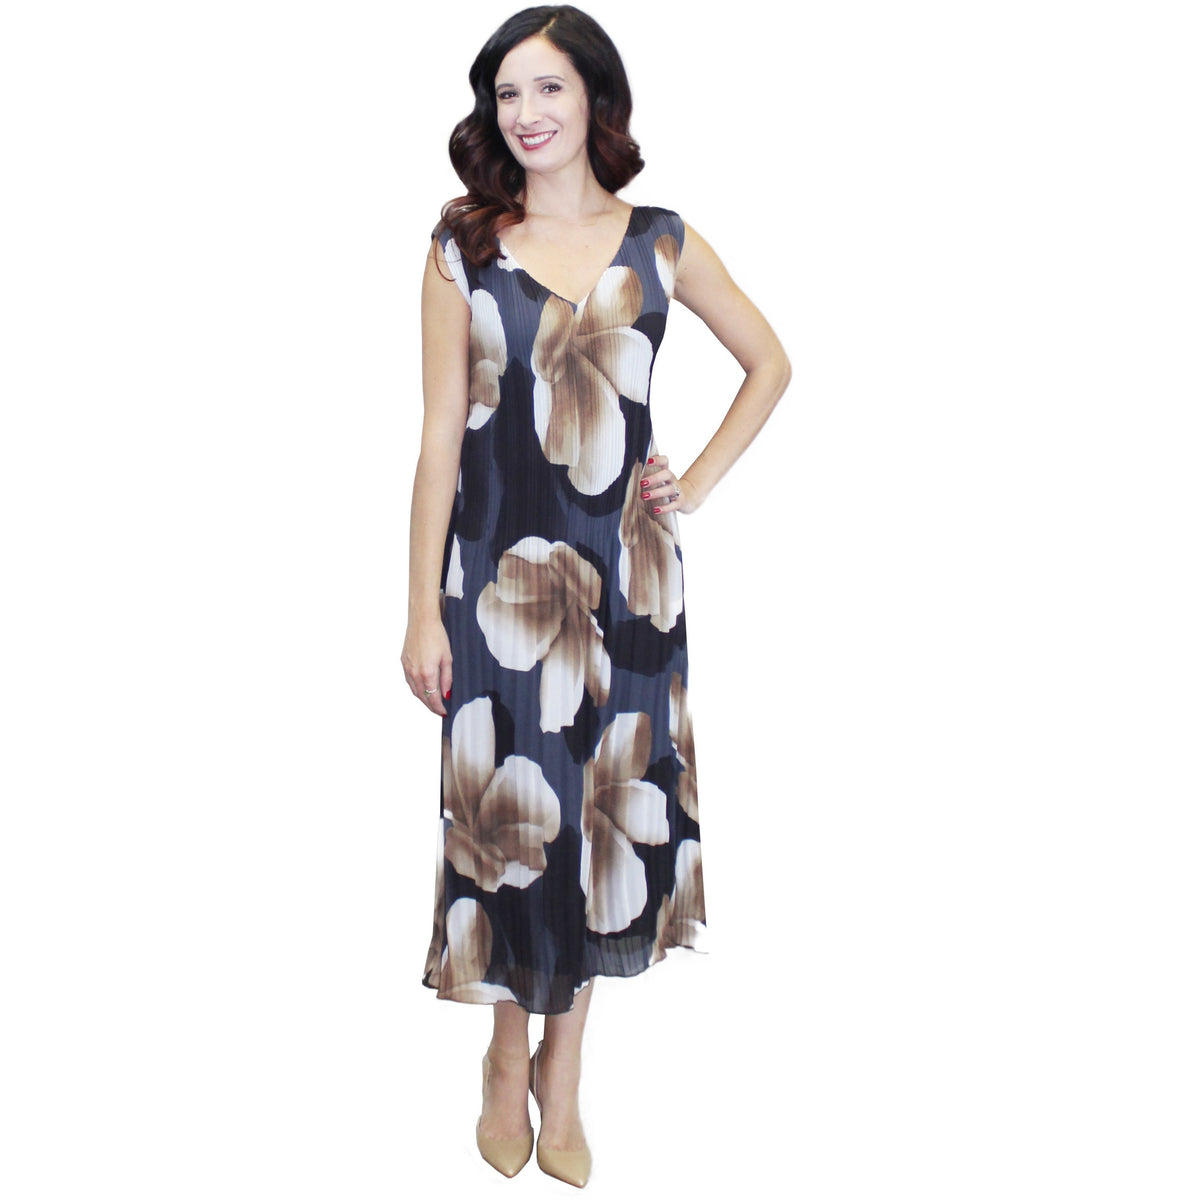 Large Flower Print Crinkle Dress - Tan